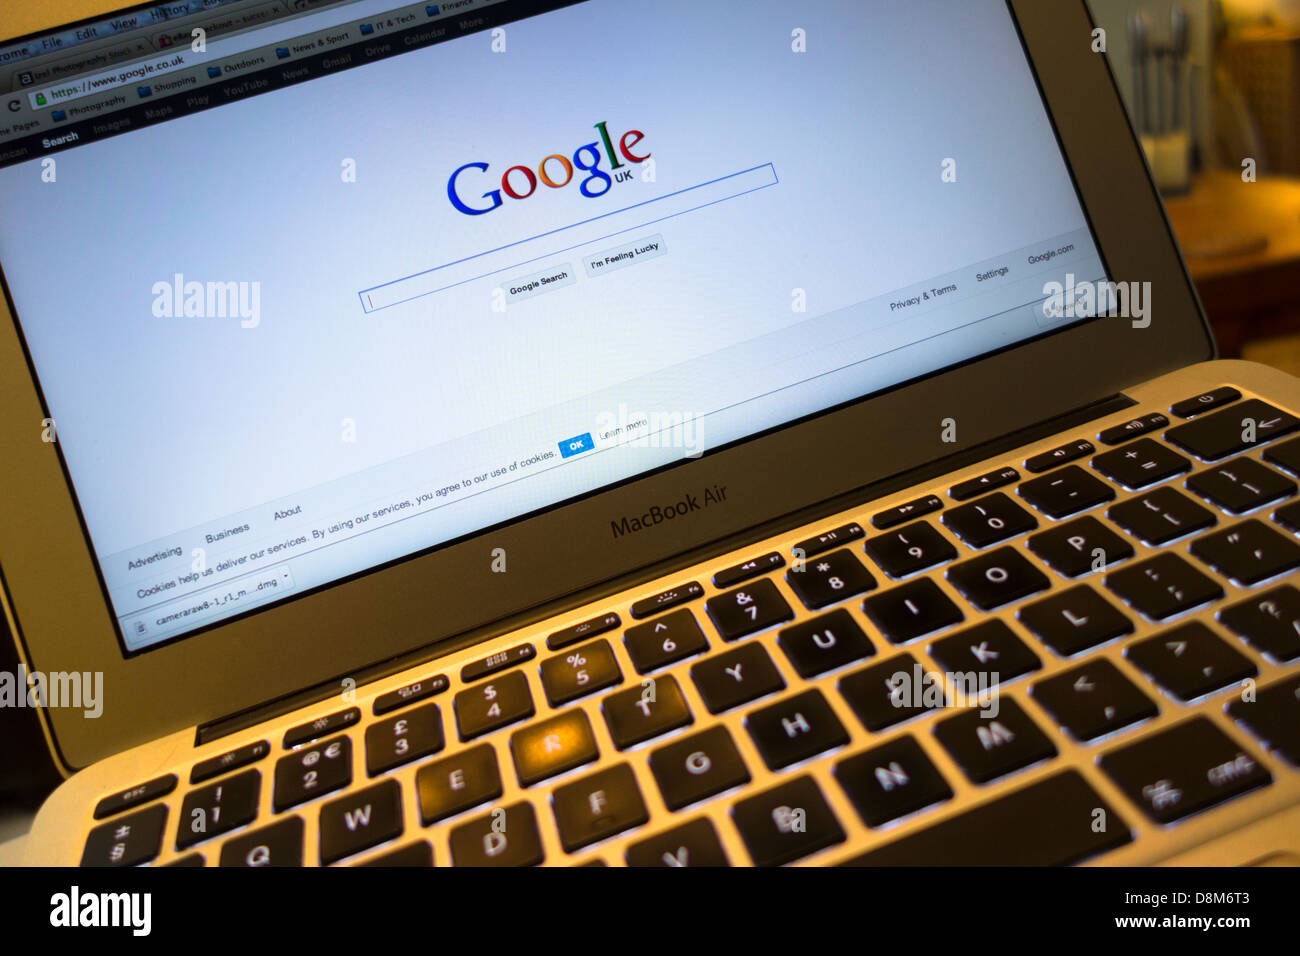 how to make google your homepage on macbook air